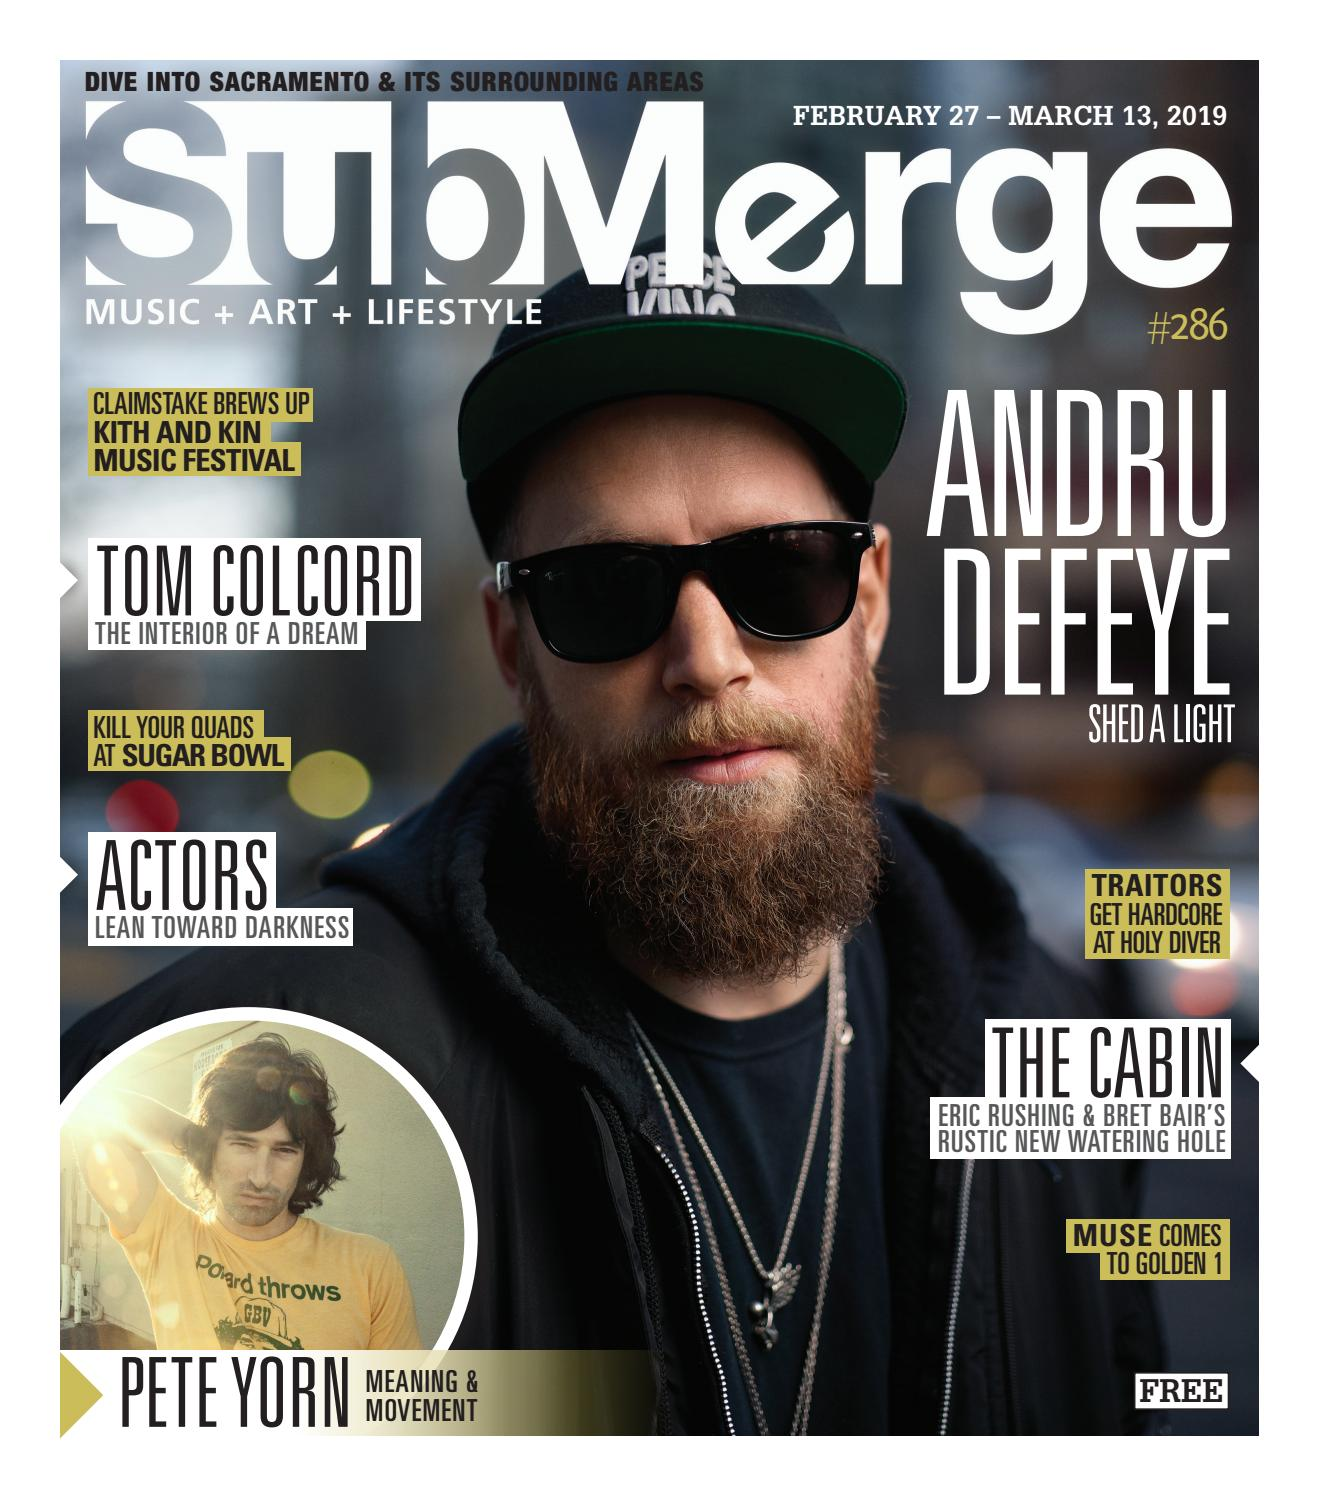 cb94397cf Submerge Magazine: Issue 286 (February 27 - March 13, 2019) by Submerge  Magazine - issuu